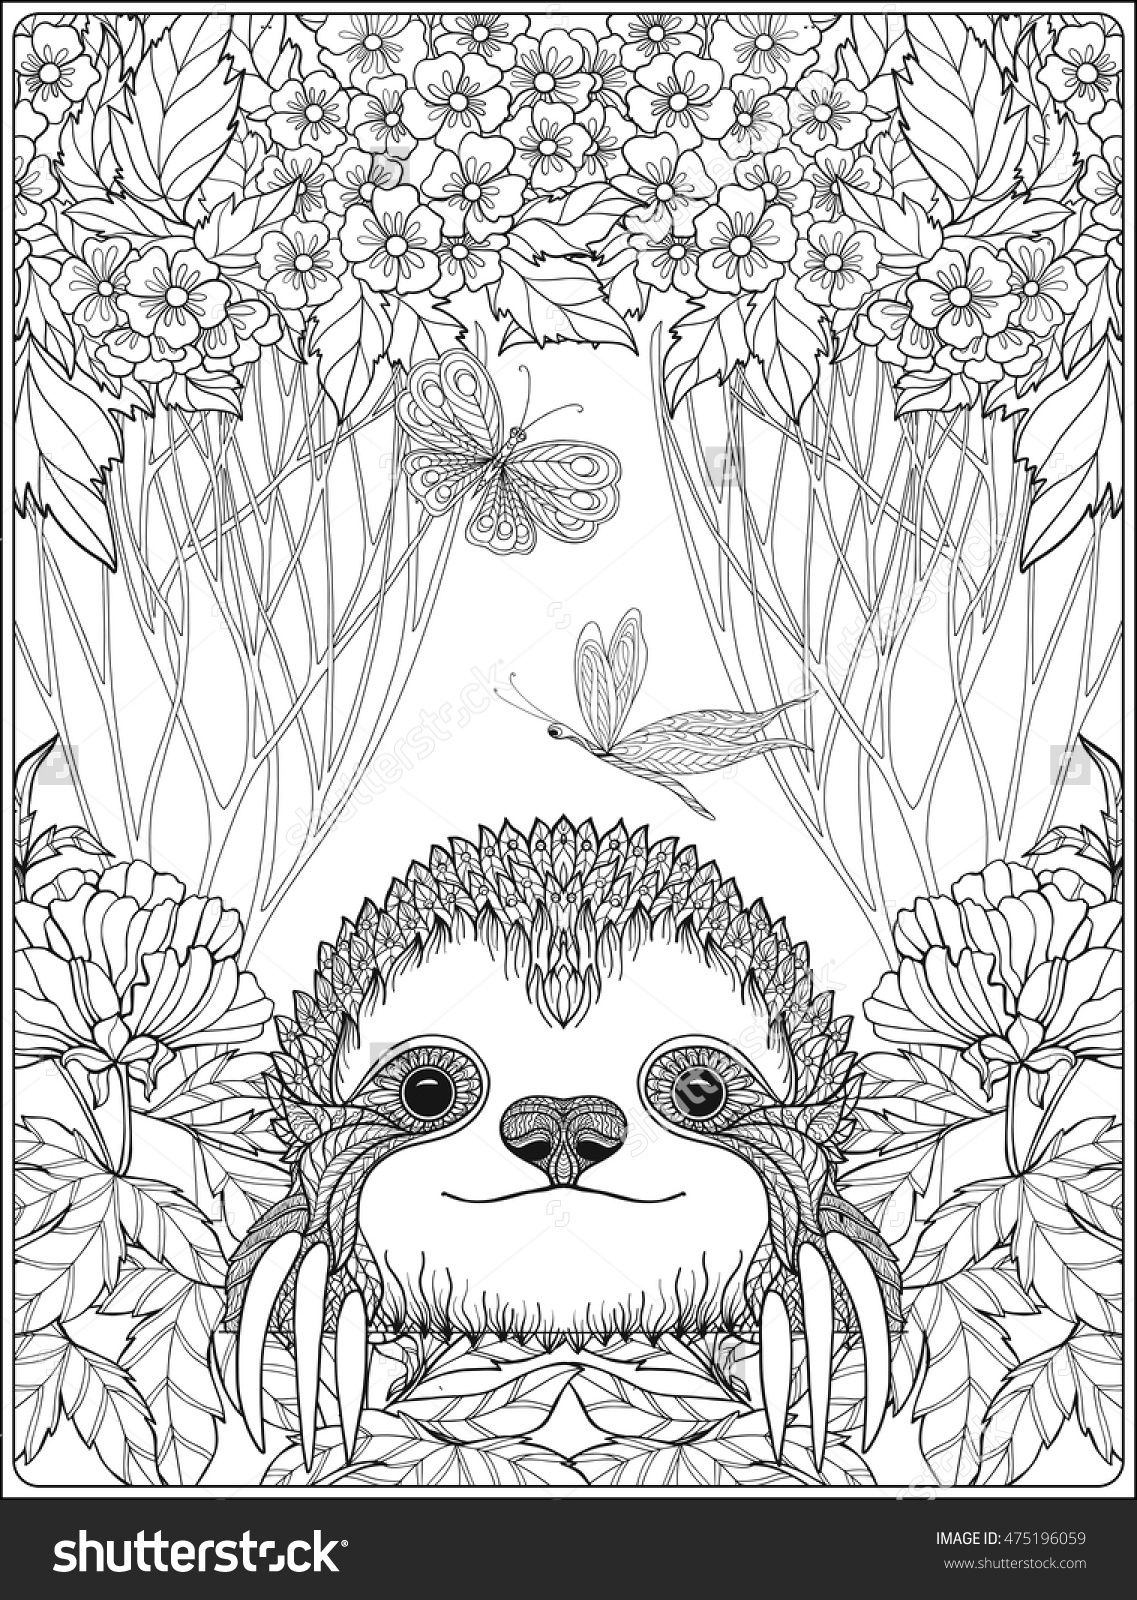 sloth coloring pages cute sloth in forest coloring page for adults : Shutterstock  sloth coloring pages